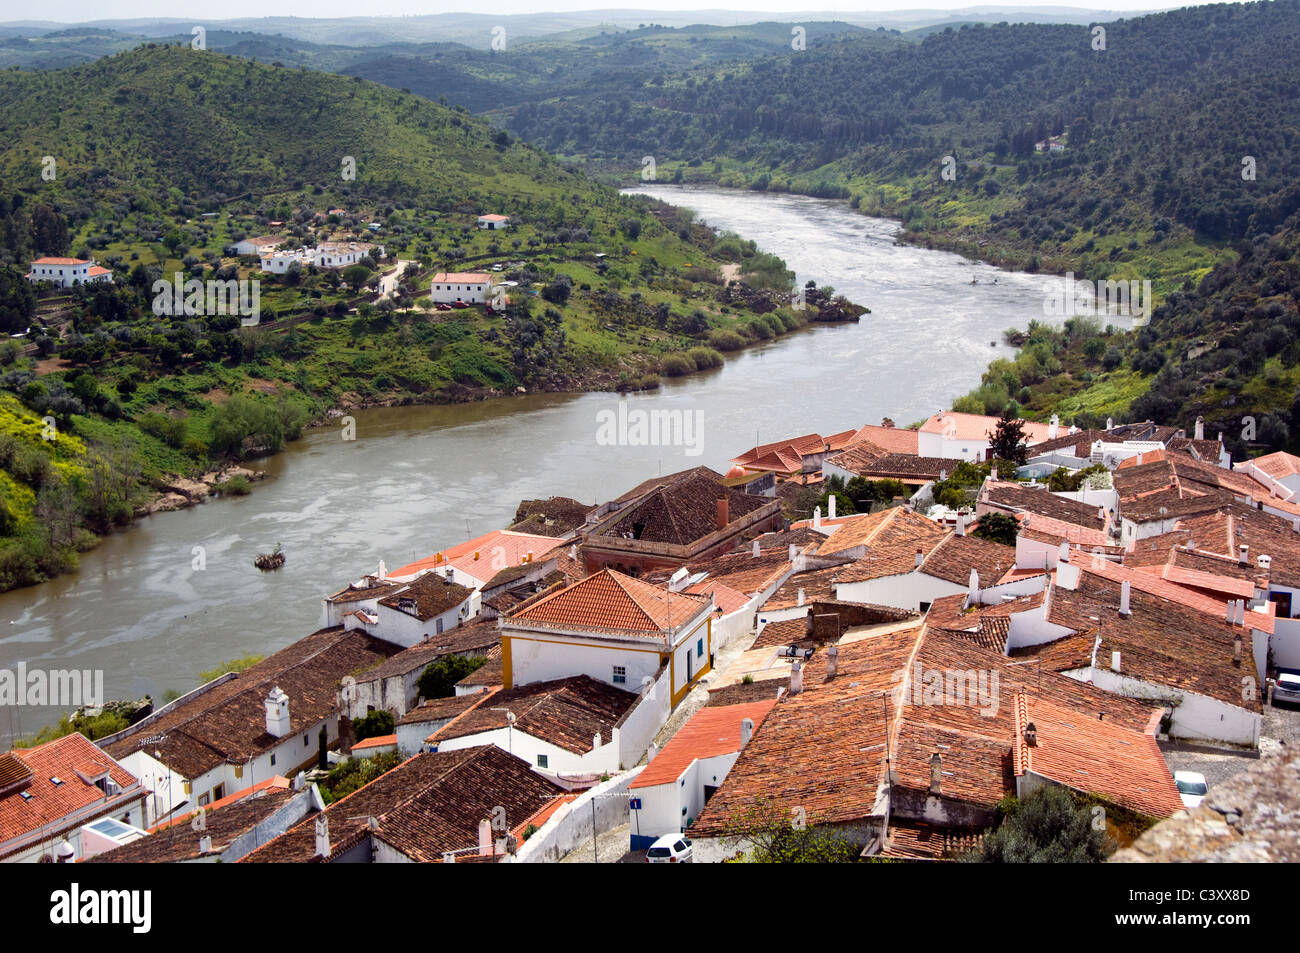 Looking down on the river Guadiana from the pretty little Mértola, Portugal - Stock Image